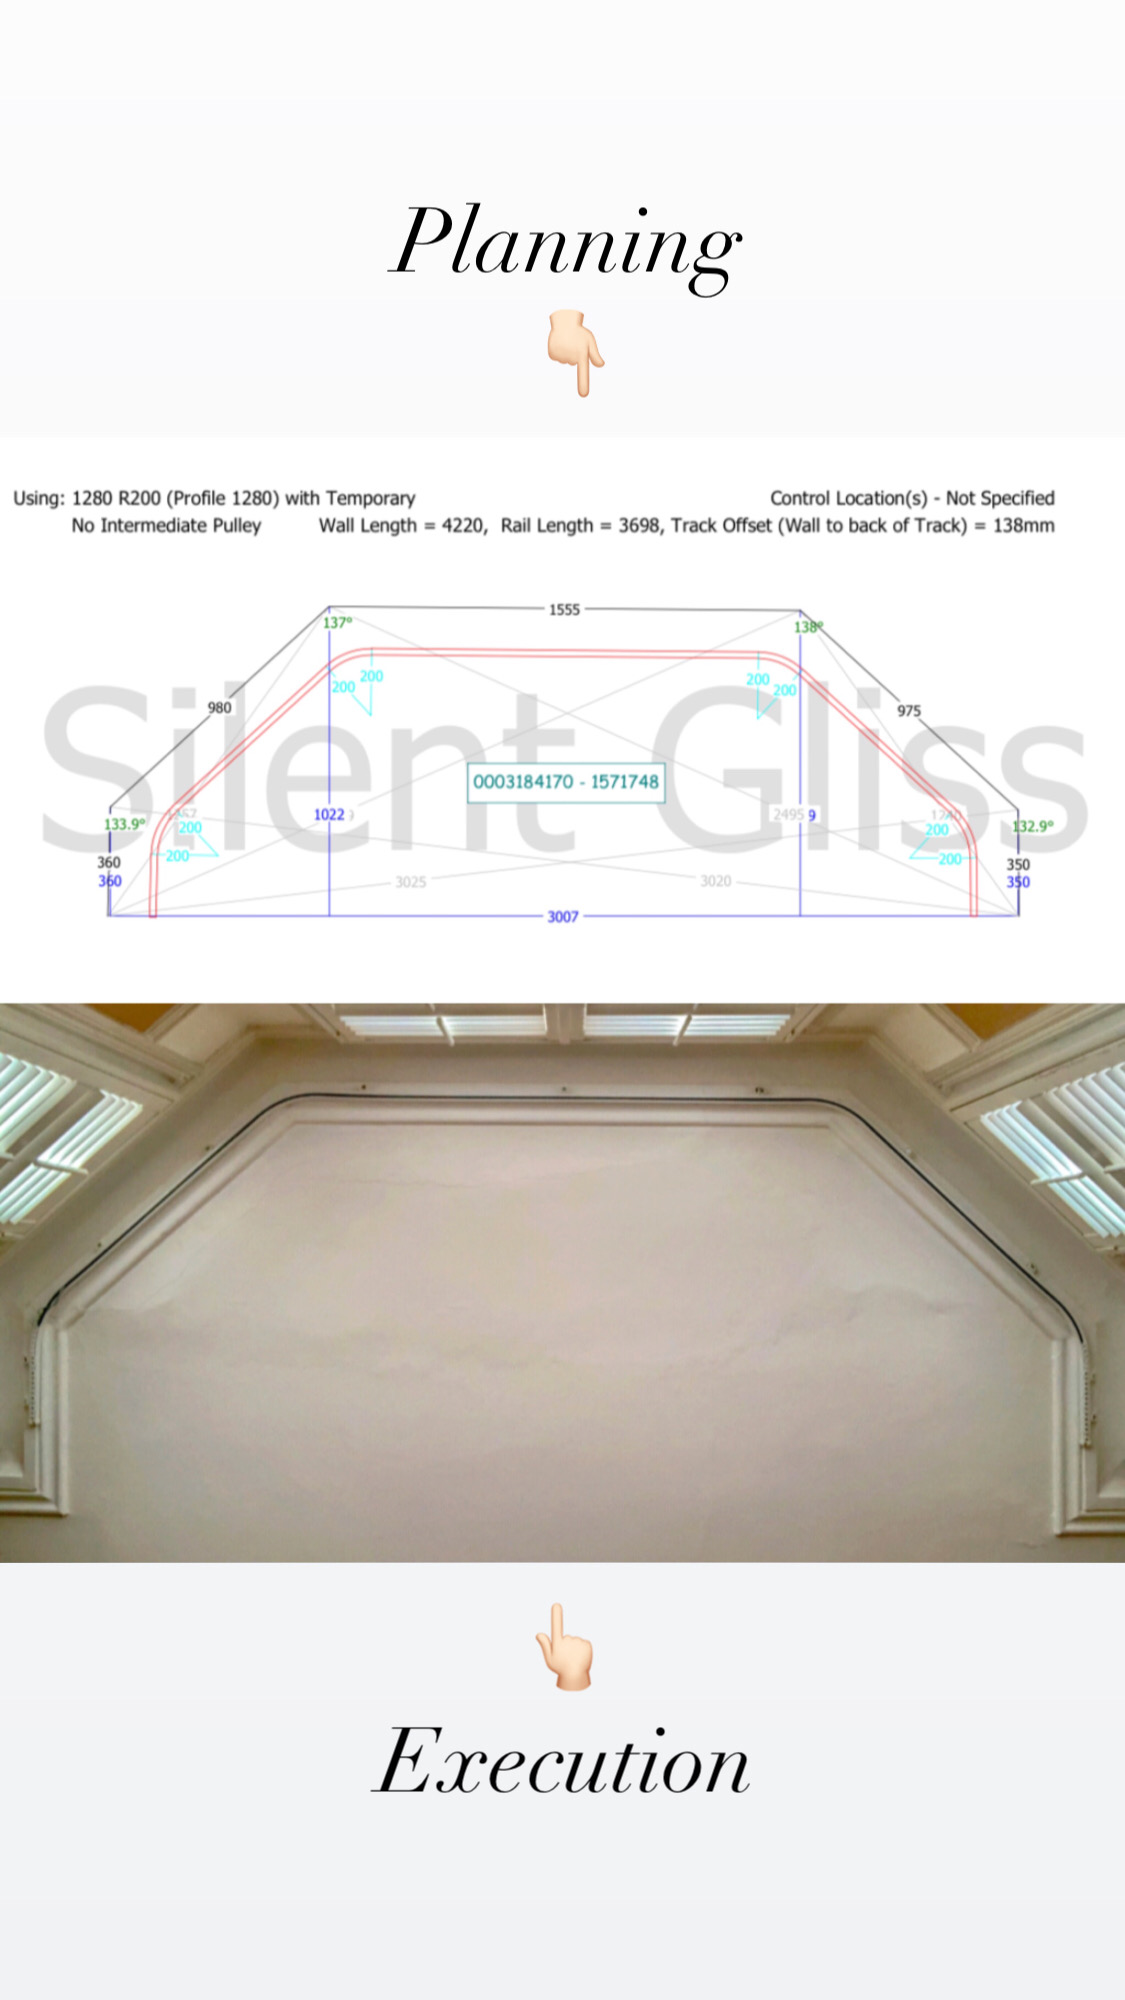 Challenging Coving fit SG 1280 Rail from Planning to Execution